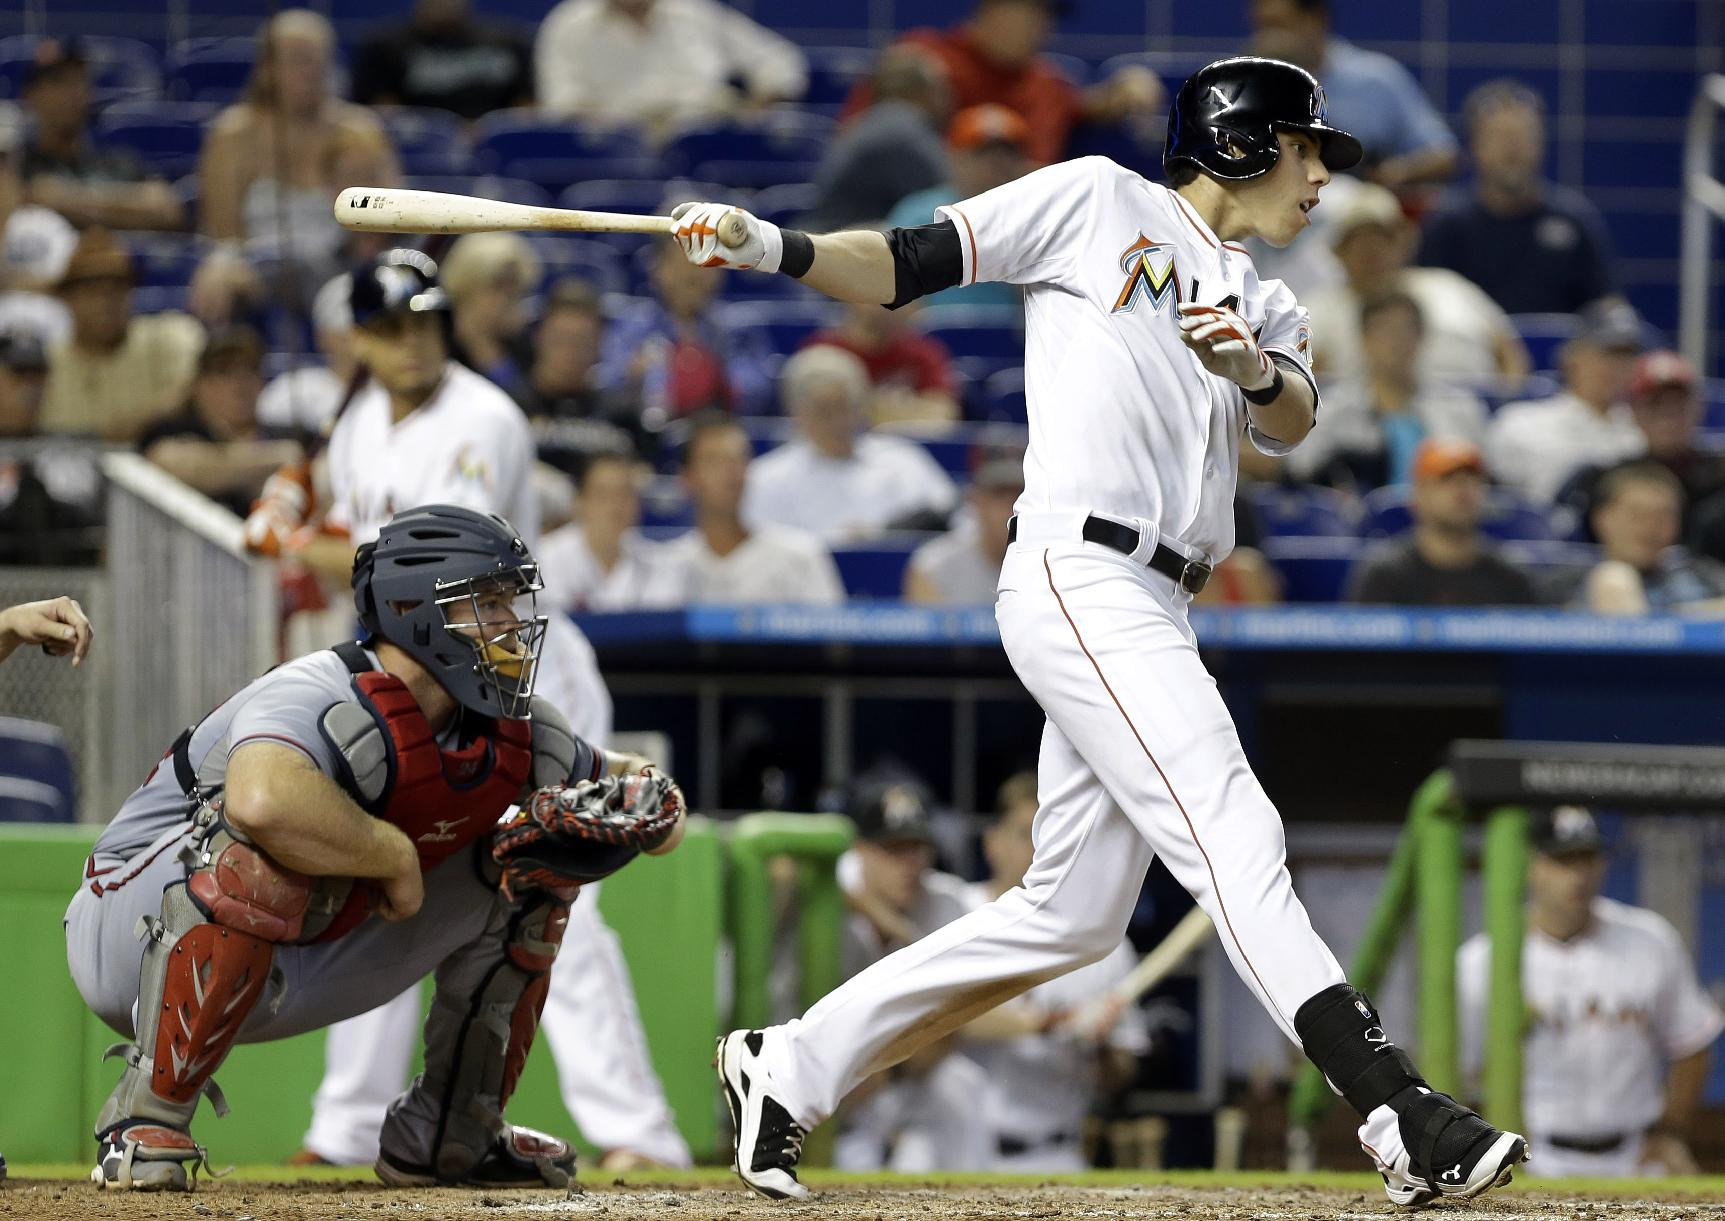 Miami Marlins' Christian Yelich hits a single in the eighth inning as Atlanta Braves catcher Evan Gattis, right, looks on during a baseball game, Thursday, Sept. 12, 2013, in Miami